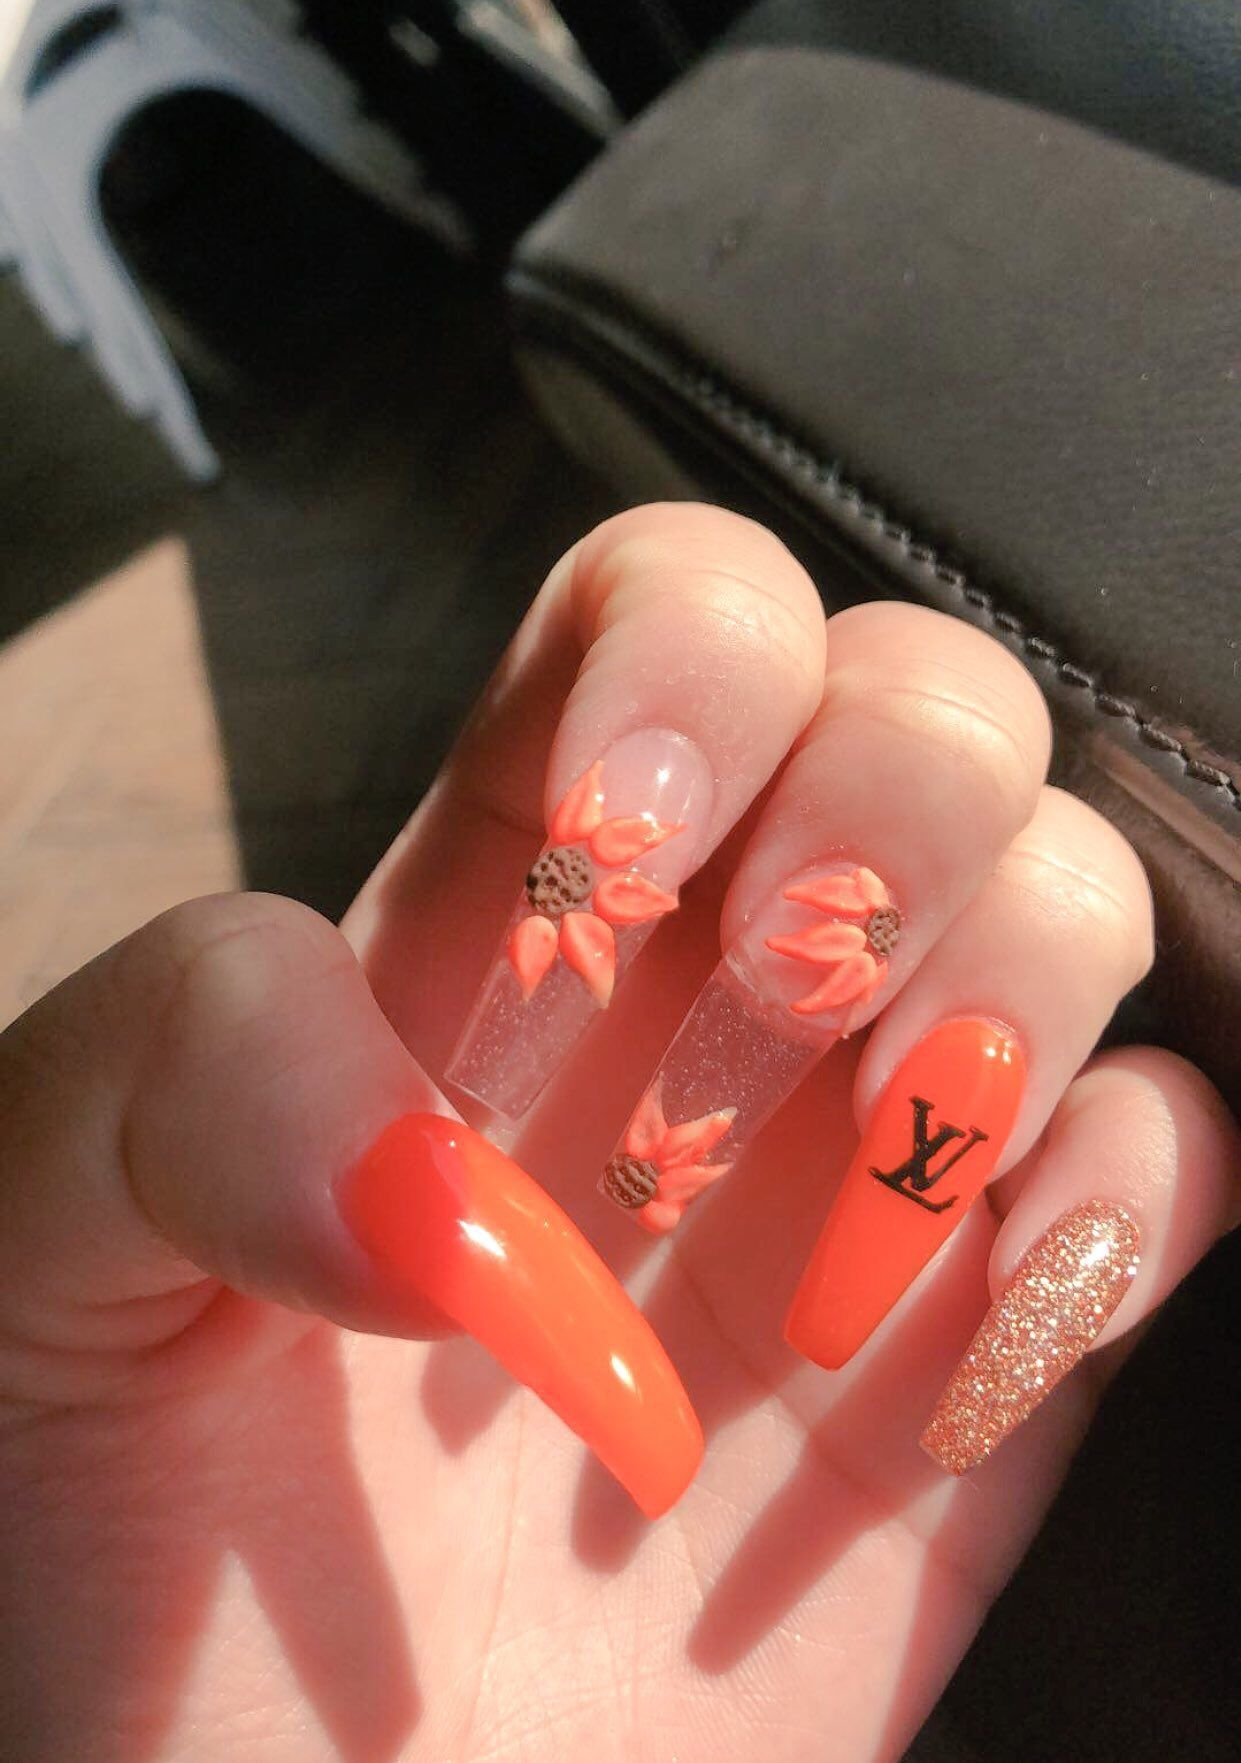 Avry On In 2020 Stylish Nails Orange Nails Perfect Nails